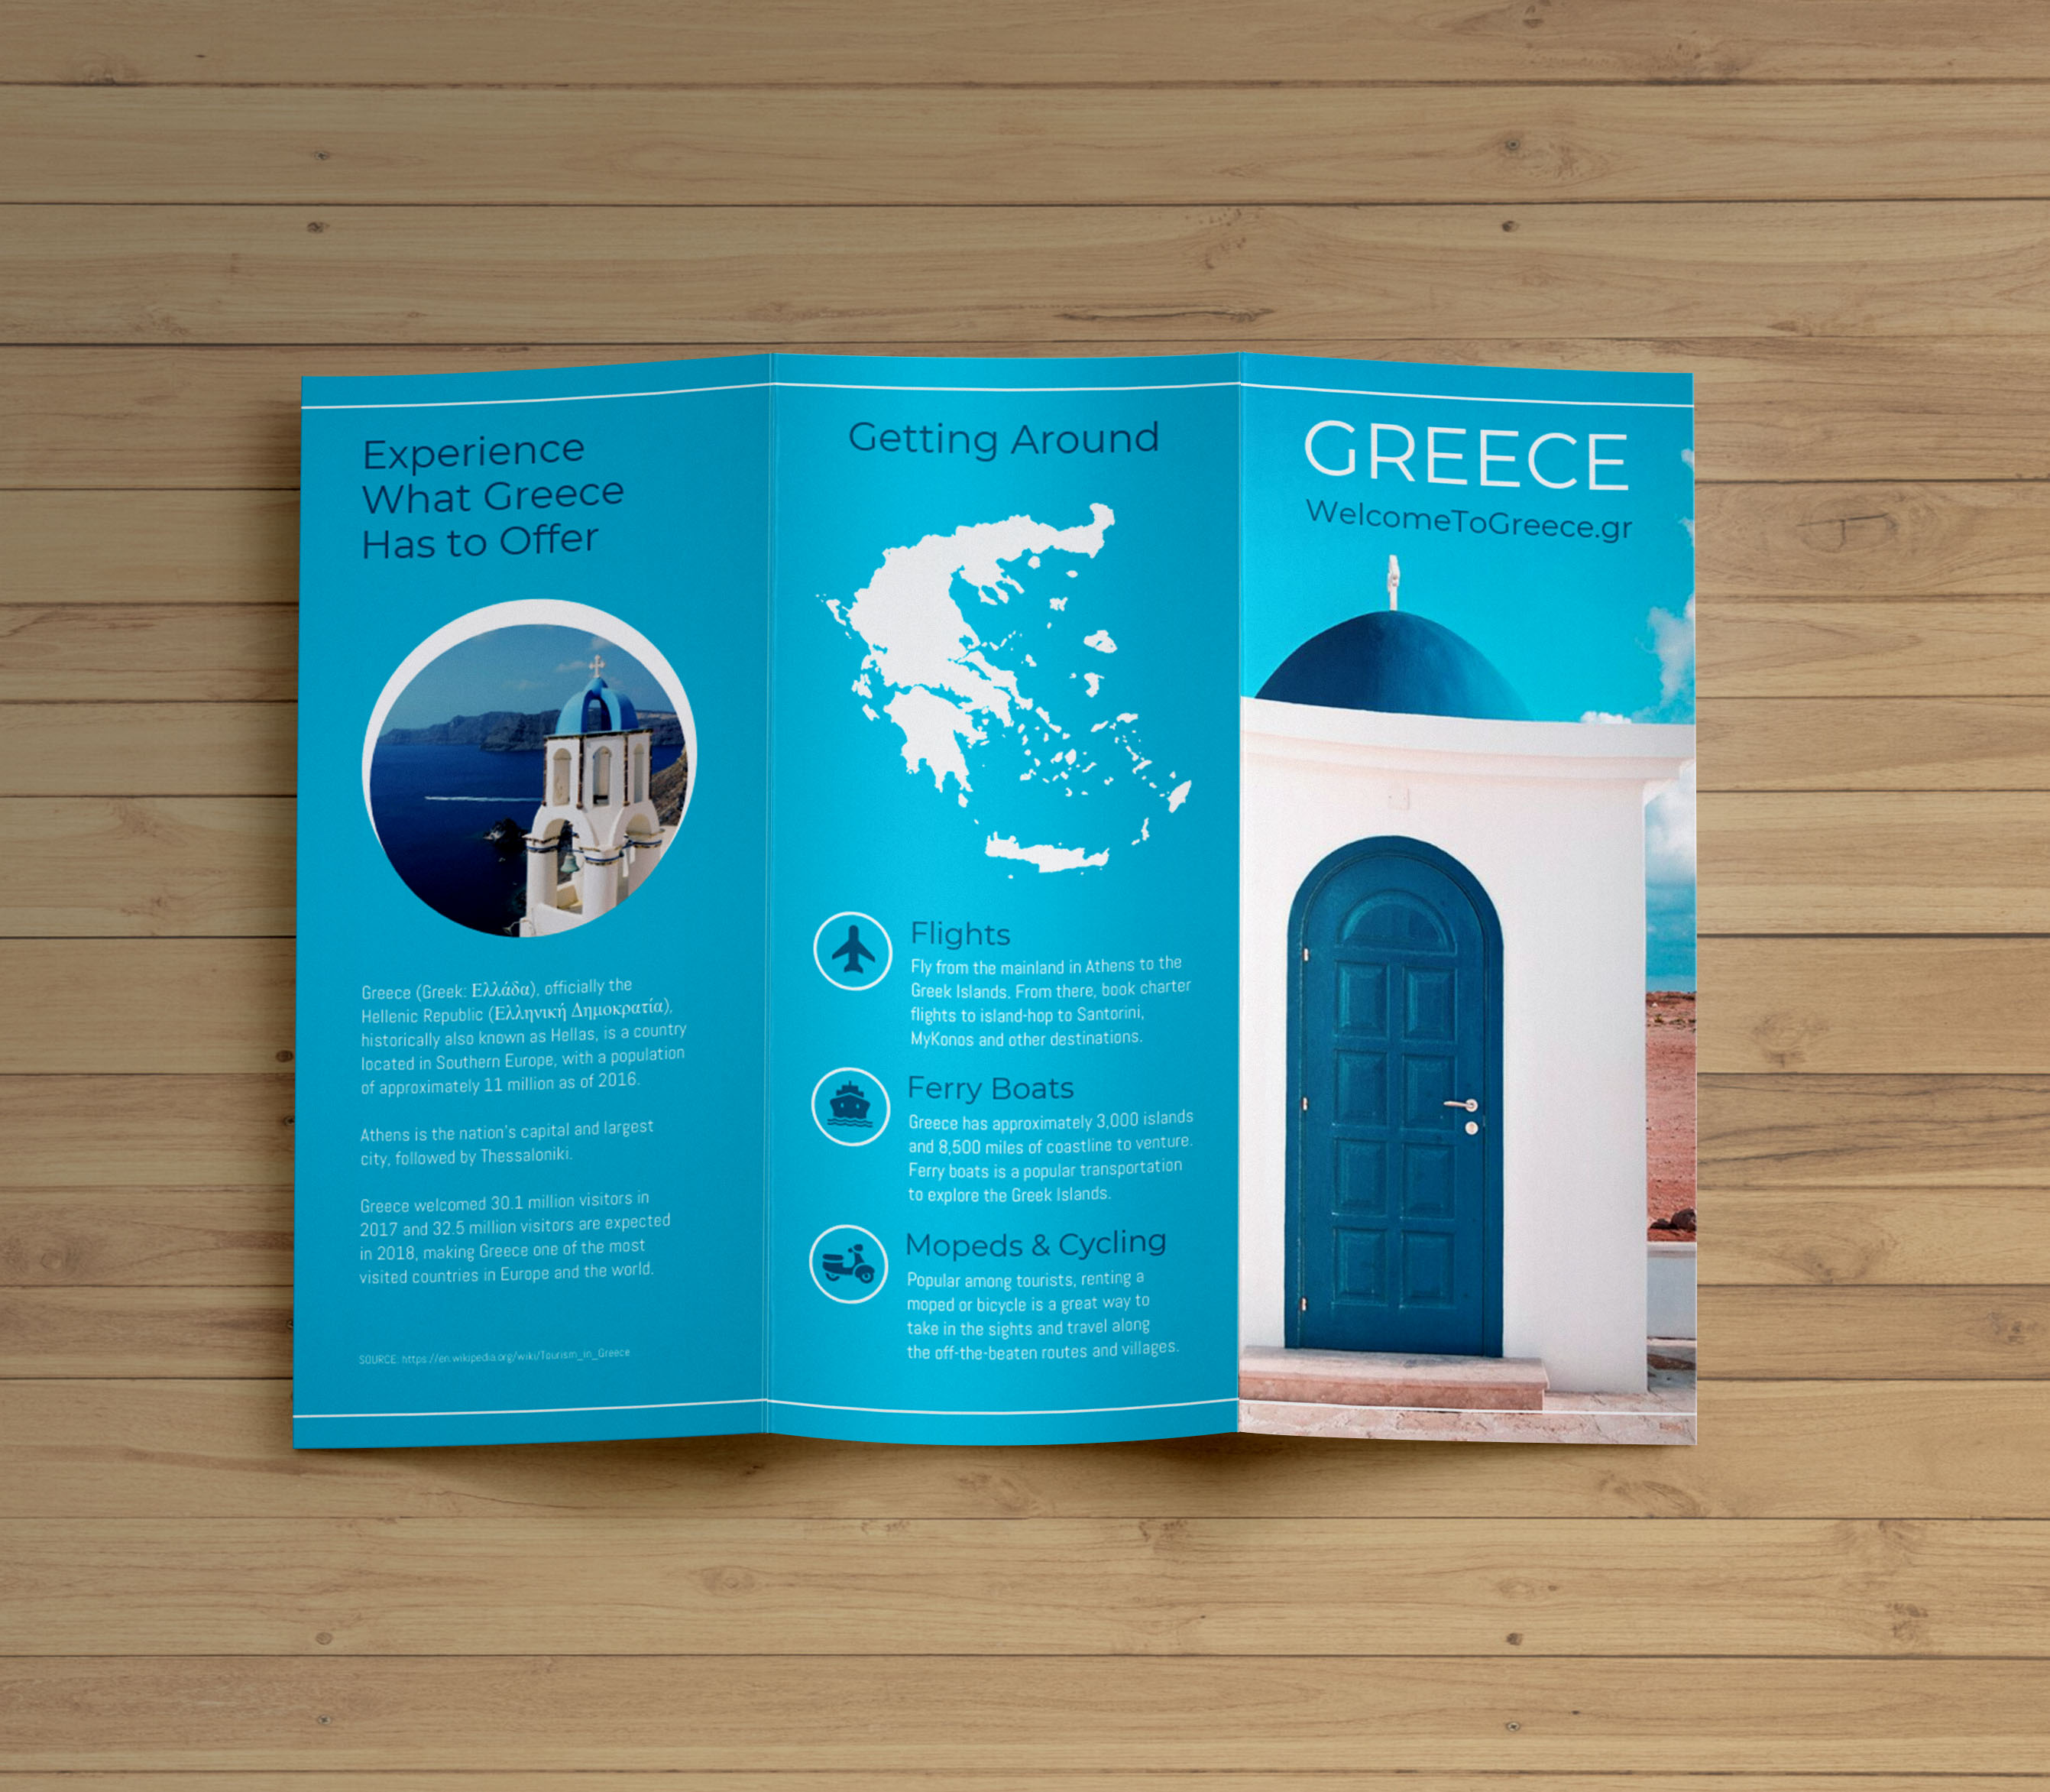 Creative Blue Greece Travel Trifold Brochure Idea    Venngage     Greece Travel Trifold Brochure Template 1